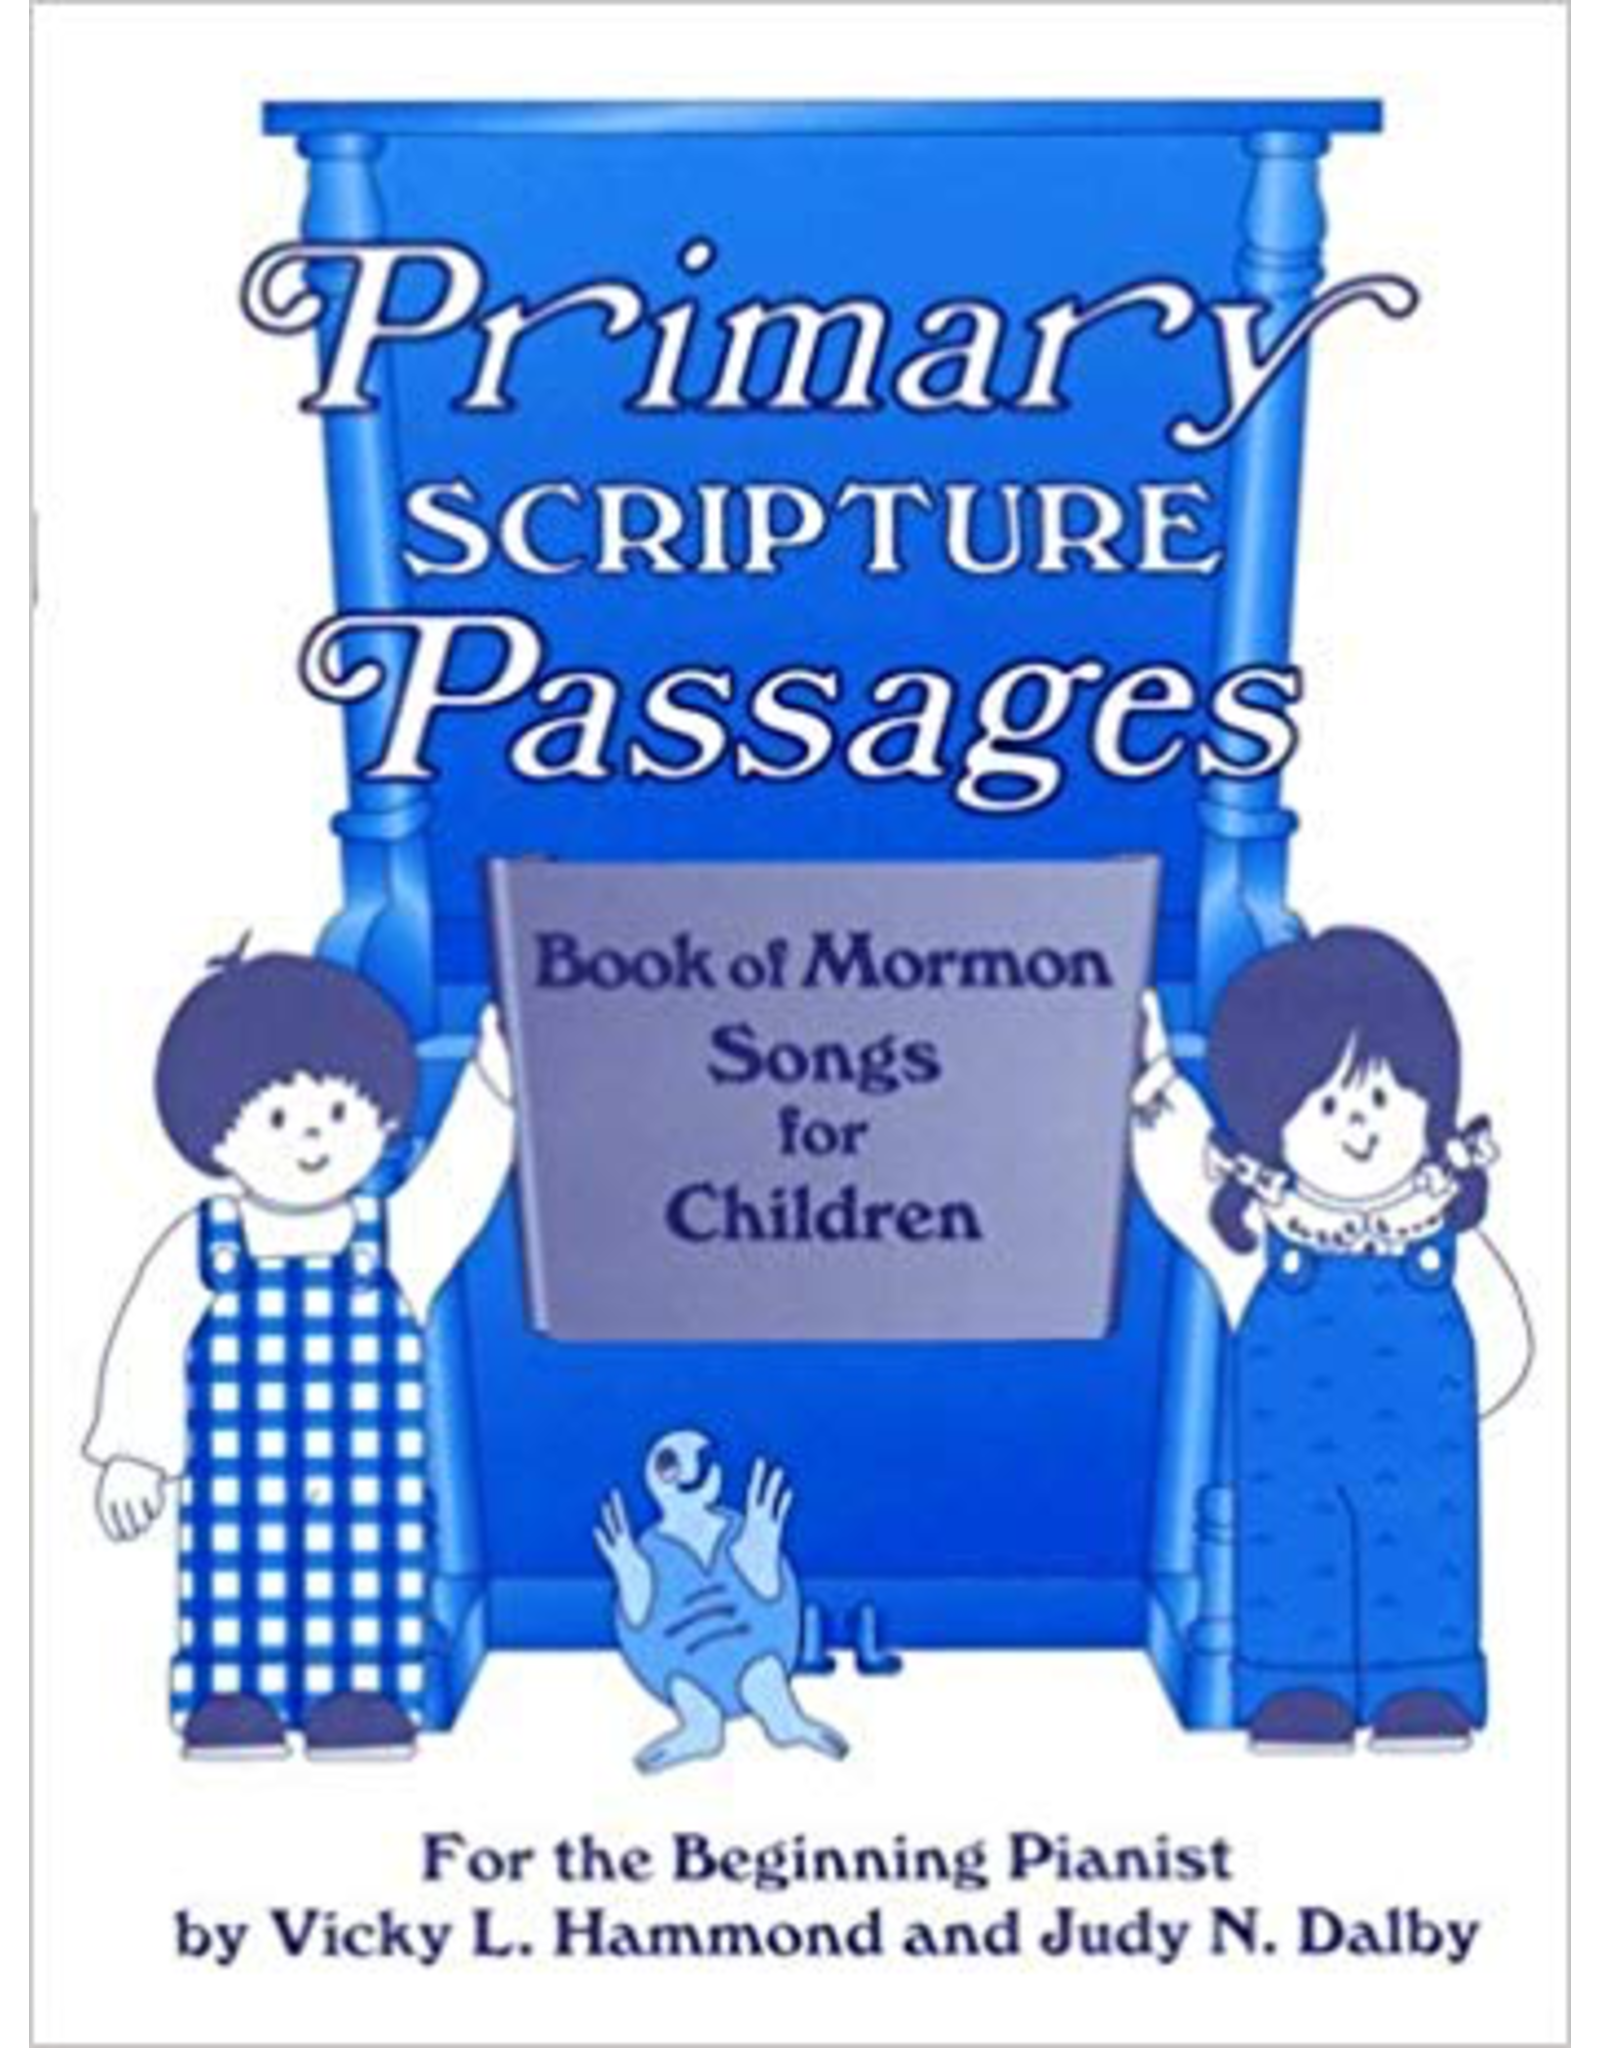 Primary Passages Primary Scripture Passages Book of Mormon Songs for Children Vicky L. Hammond and Judy N. Dalby